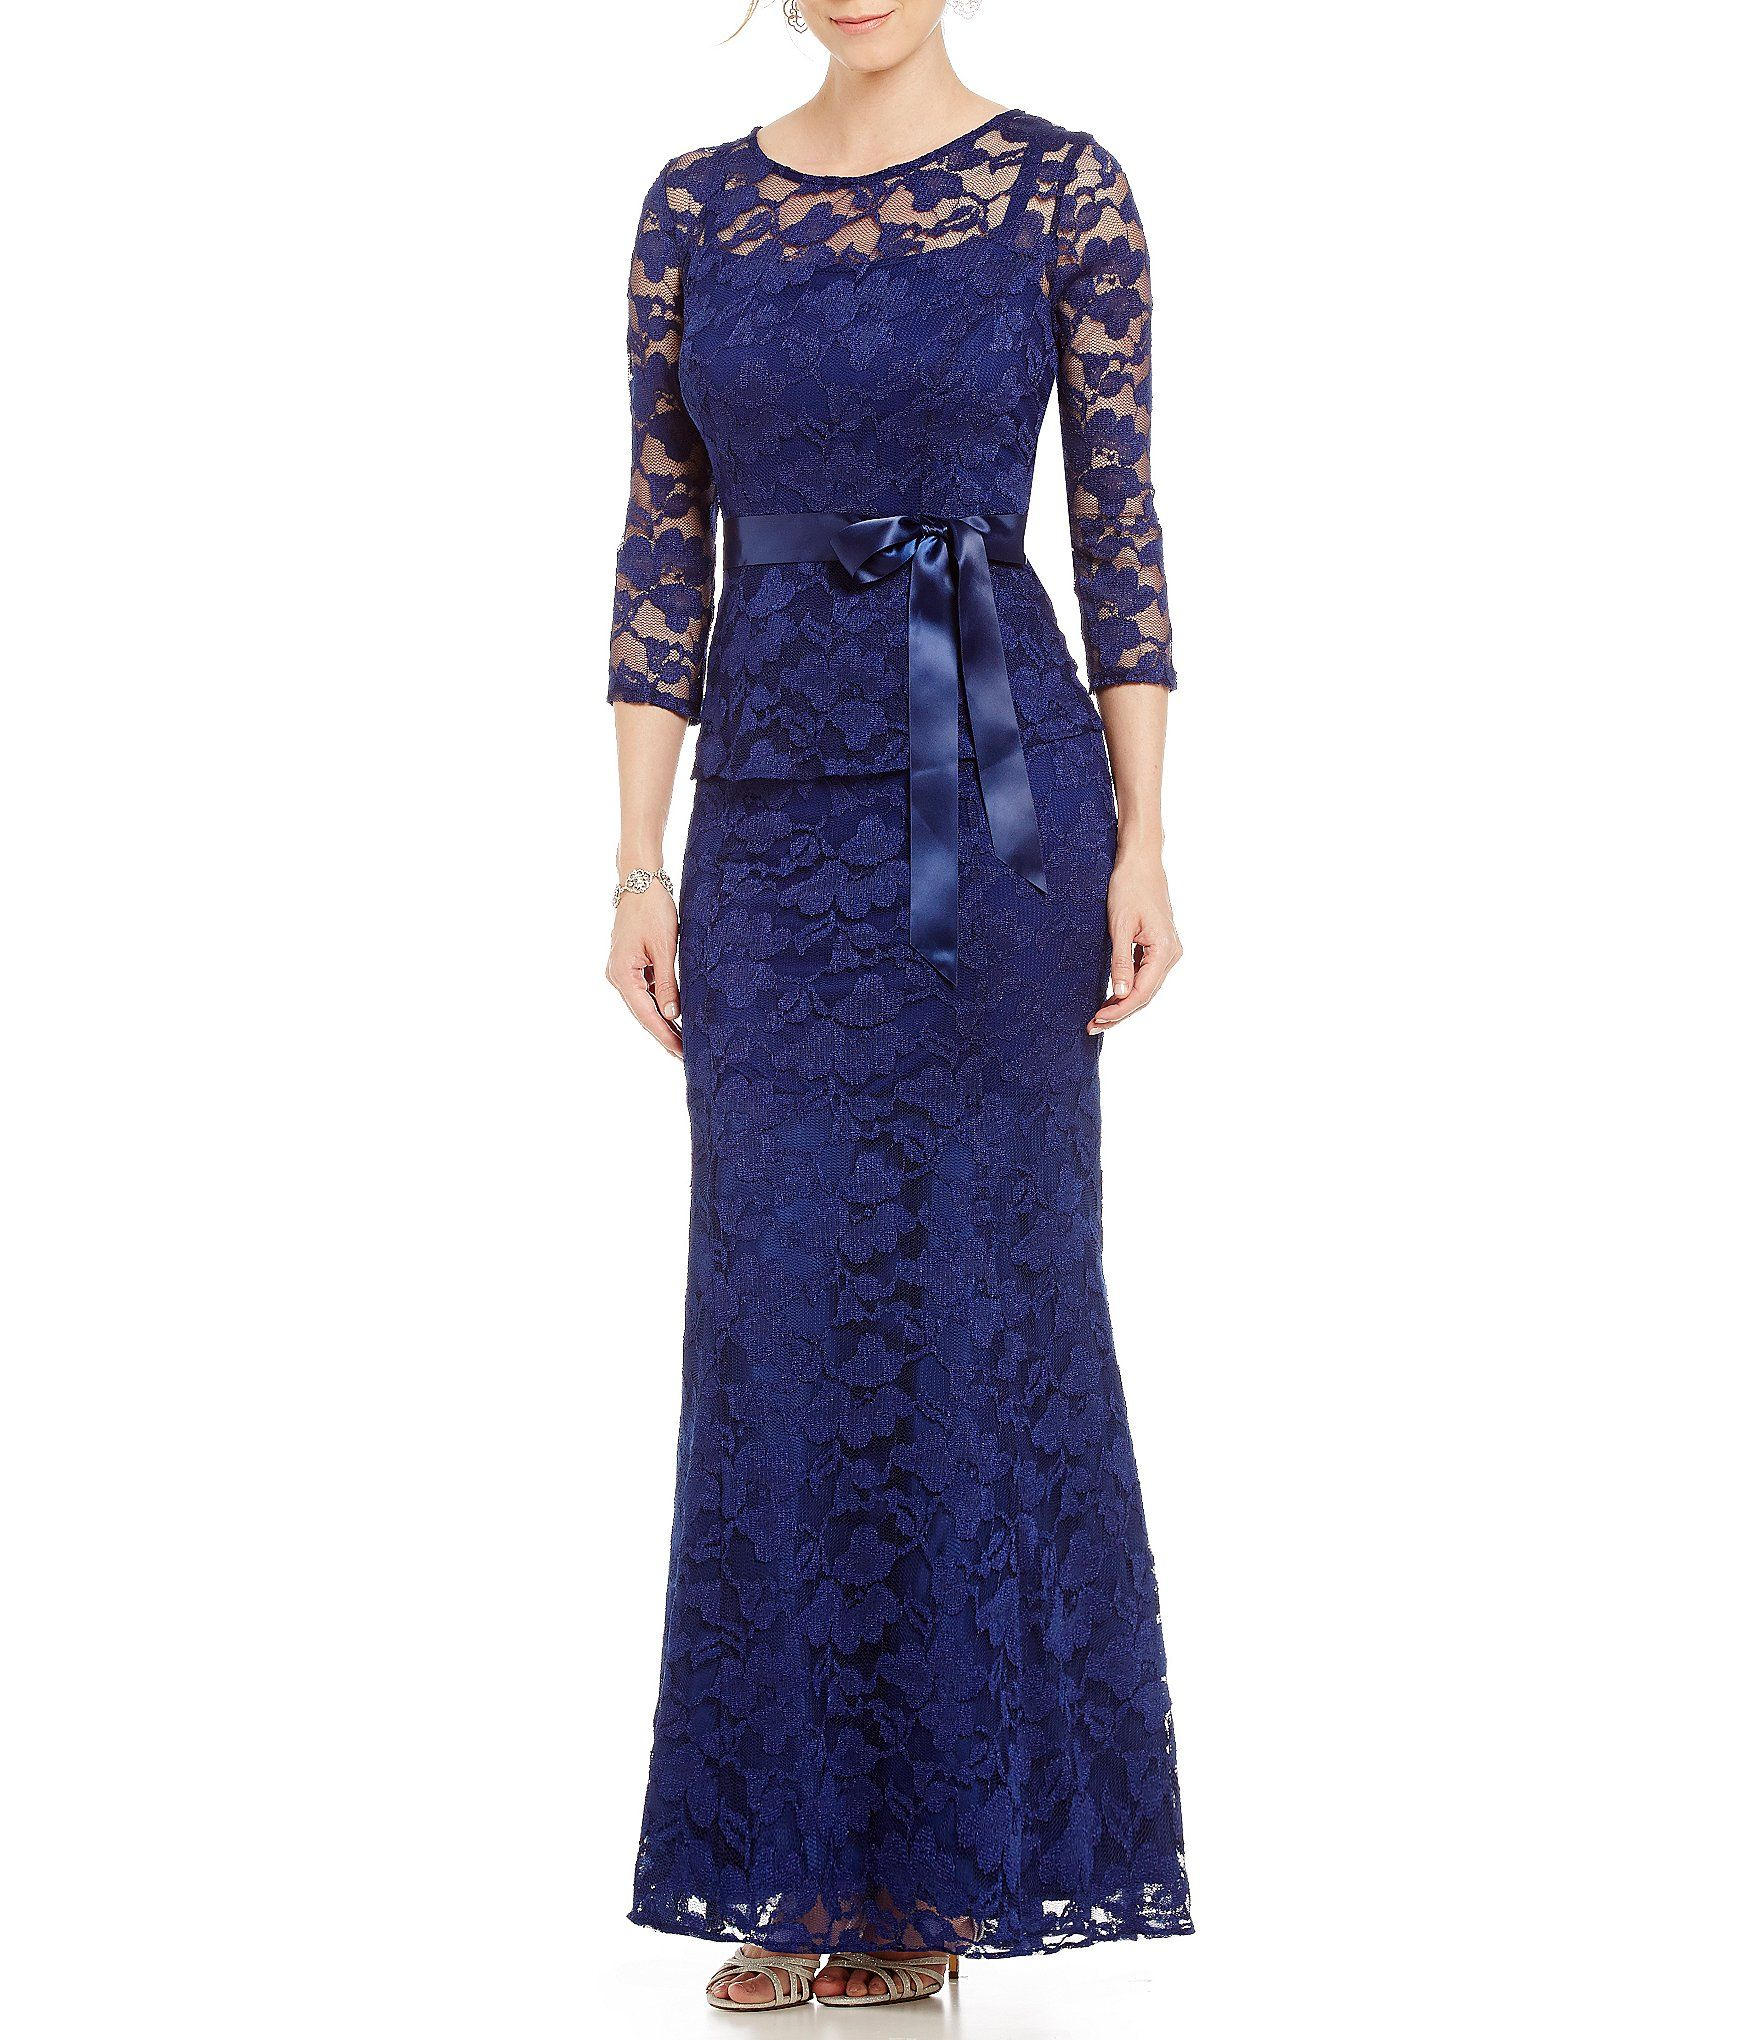 Pin By Susan Suid On Formal Dresses Long Pinterest Lace Dress